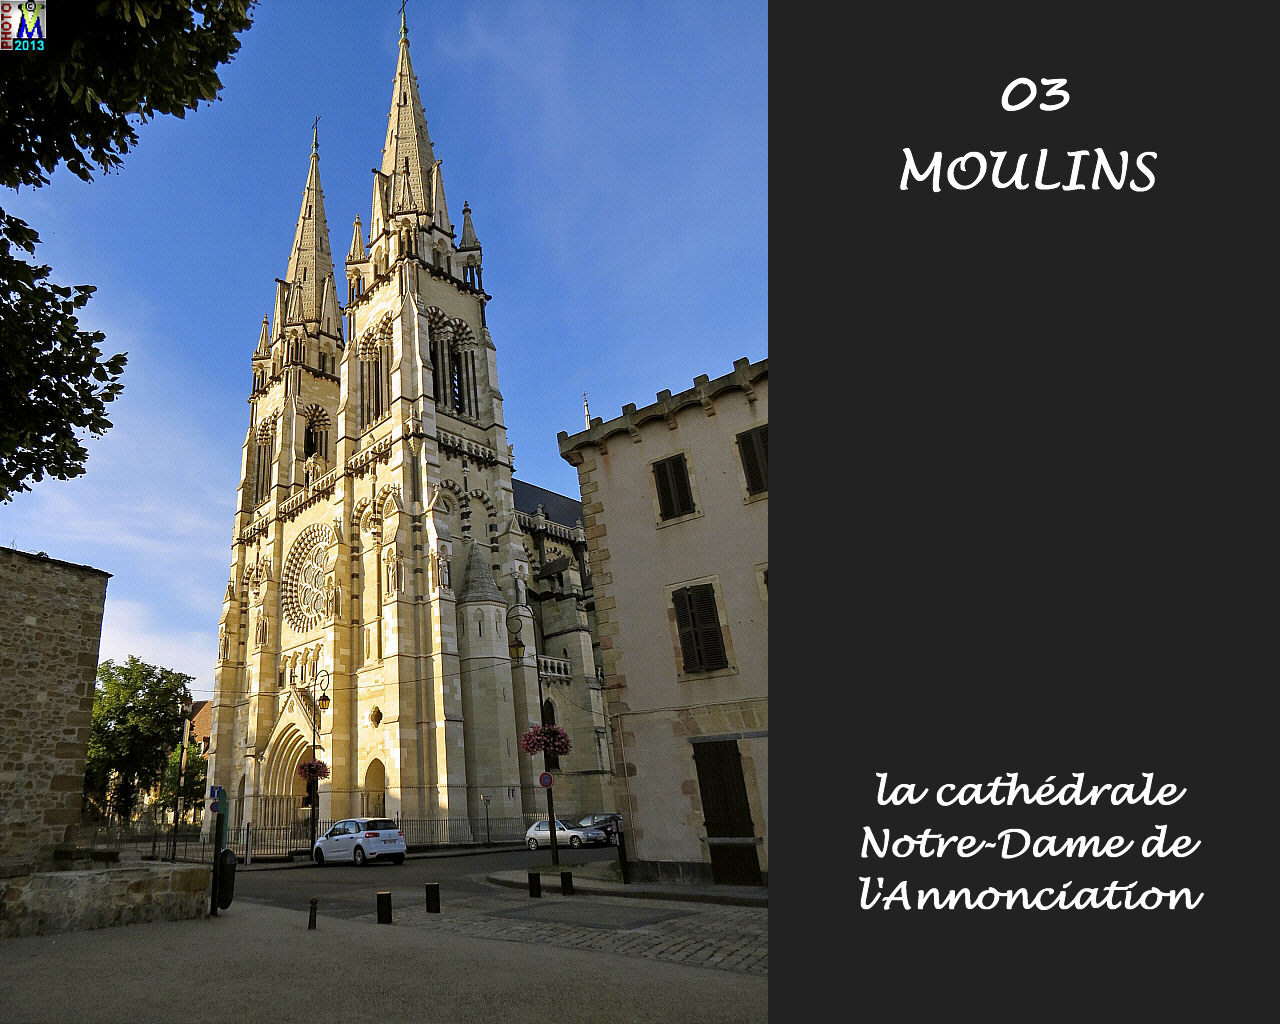 03MOULINS_cathedrale_102.jpg